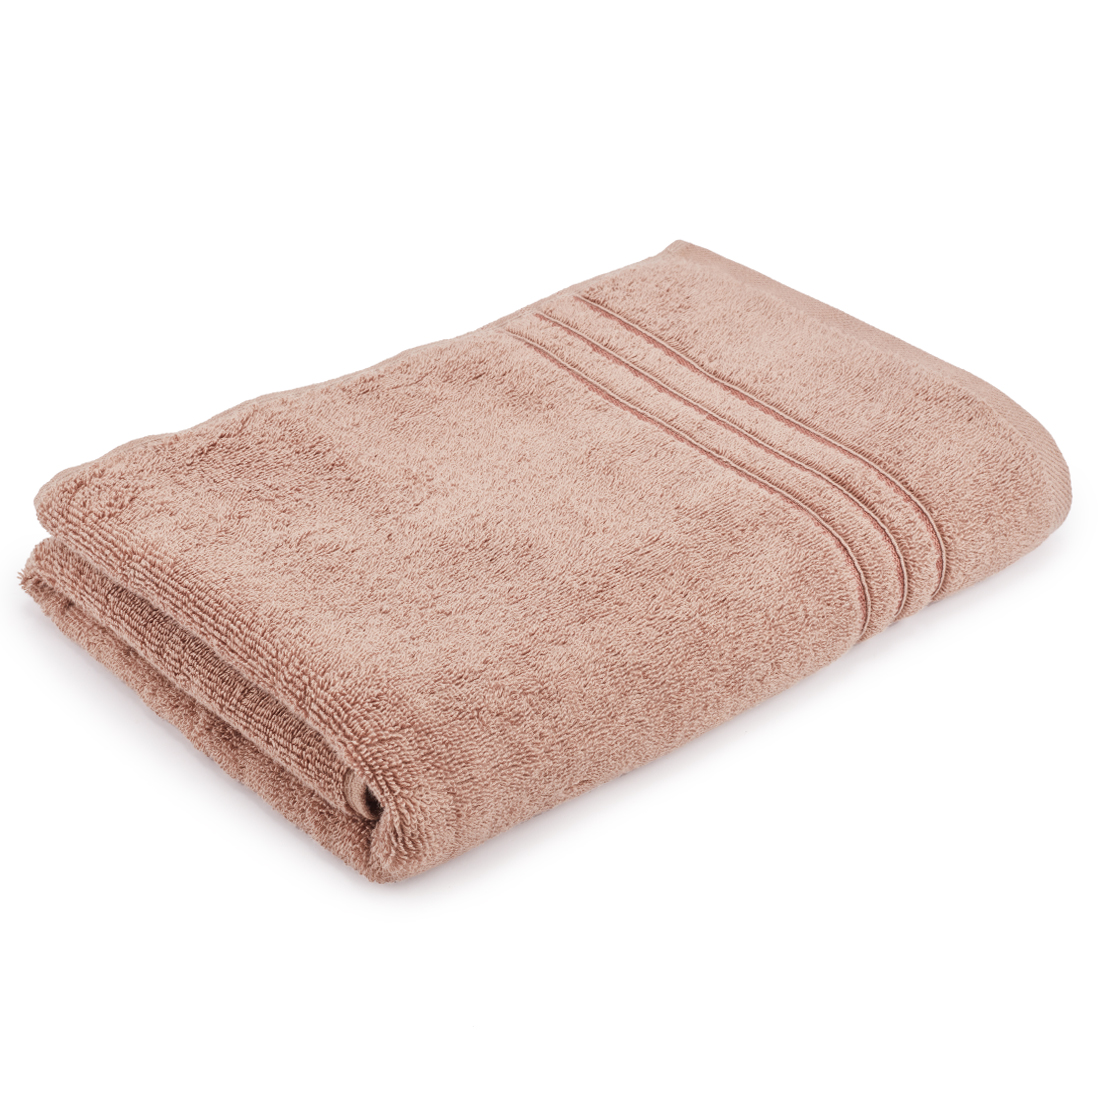 Bath Towel 70X140 Nora Mocha Combed Cotton Bath Towels in Mocha Colour by Living Essence